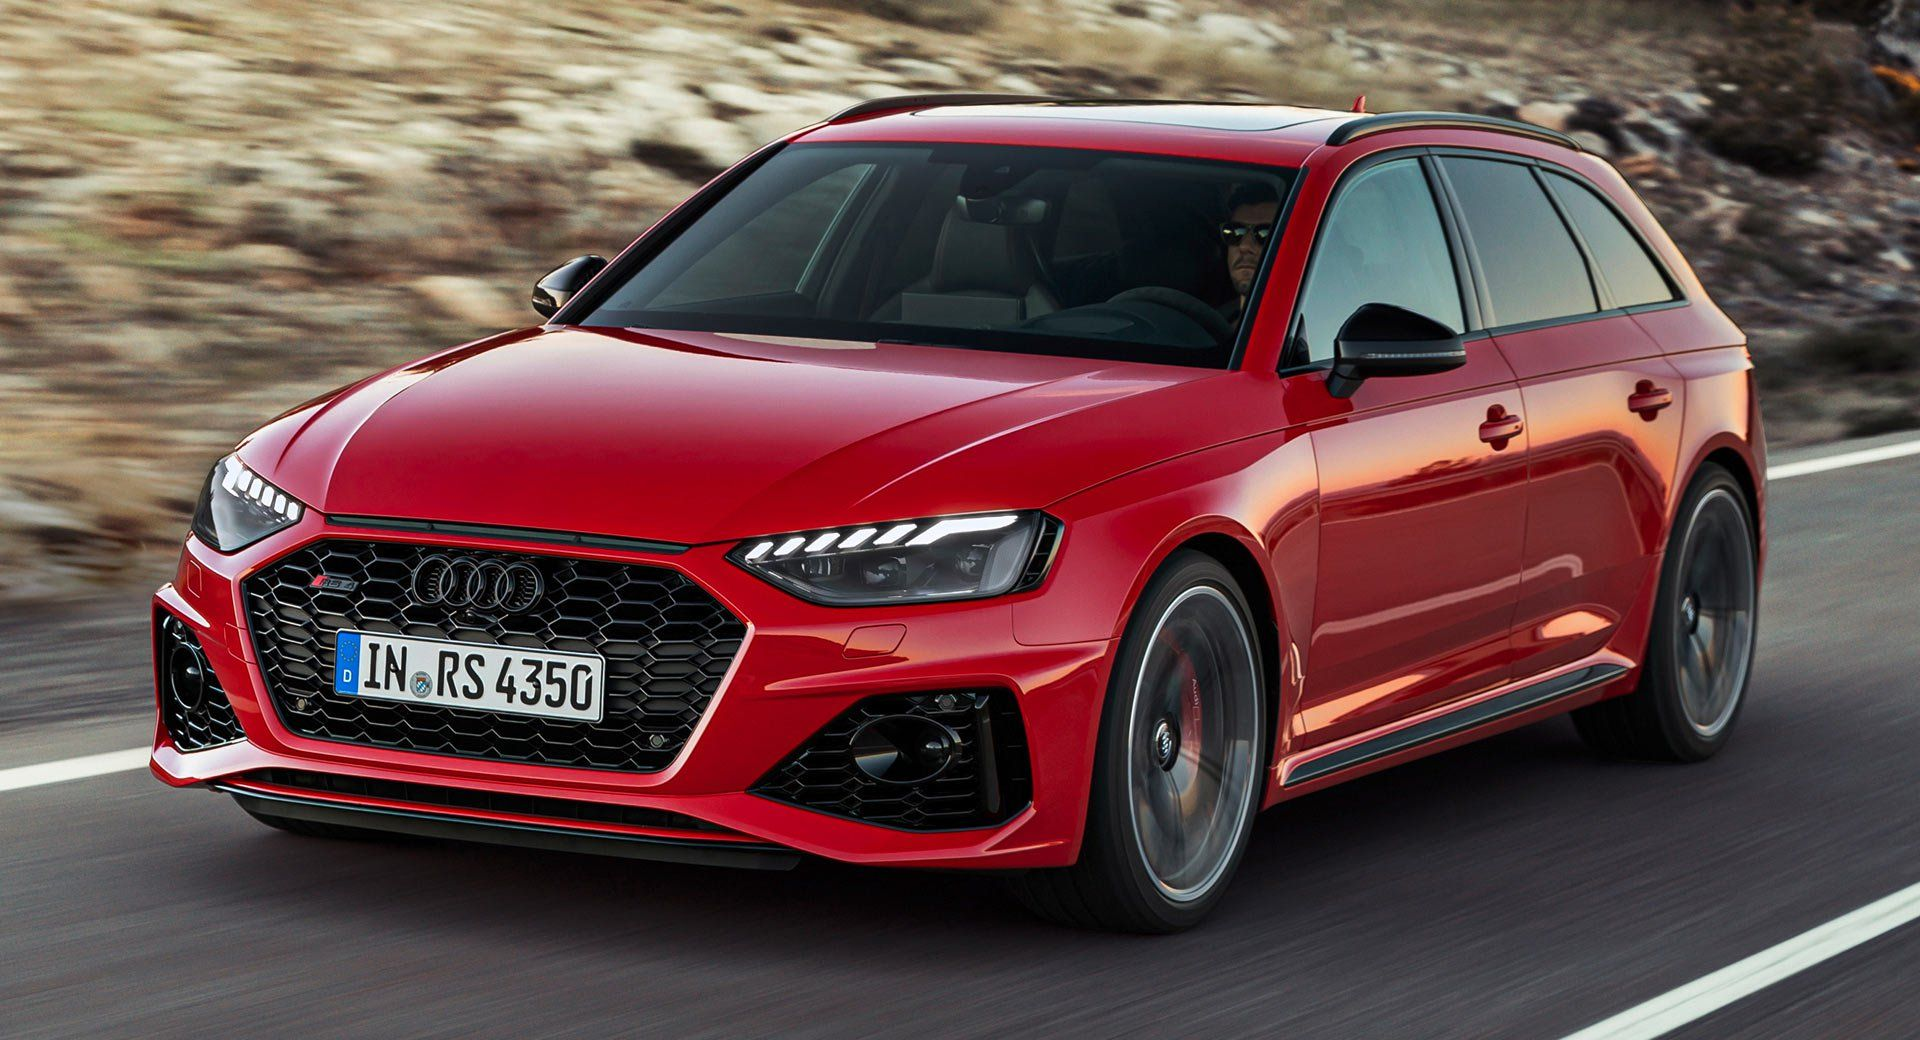 Facelifted 2020 Audi Rs4 Avant Launches With Its Big Brother S Looks Audi Audirs4 Audisport Galleries Newcars Cars Carsofinstag Audi Rs4 Audi Audi Wagon